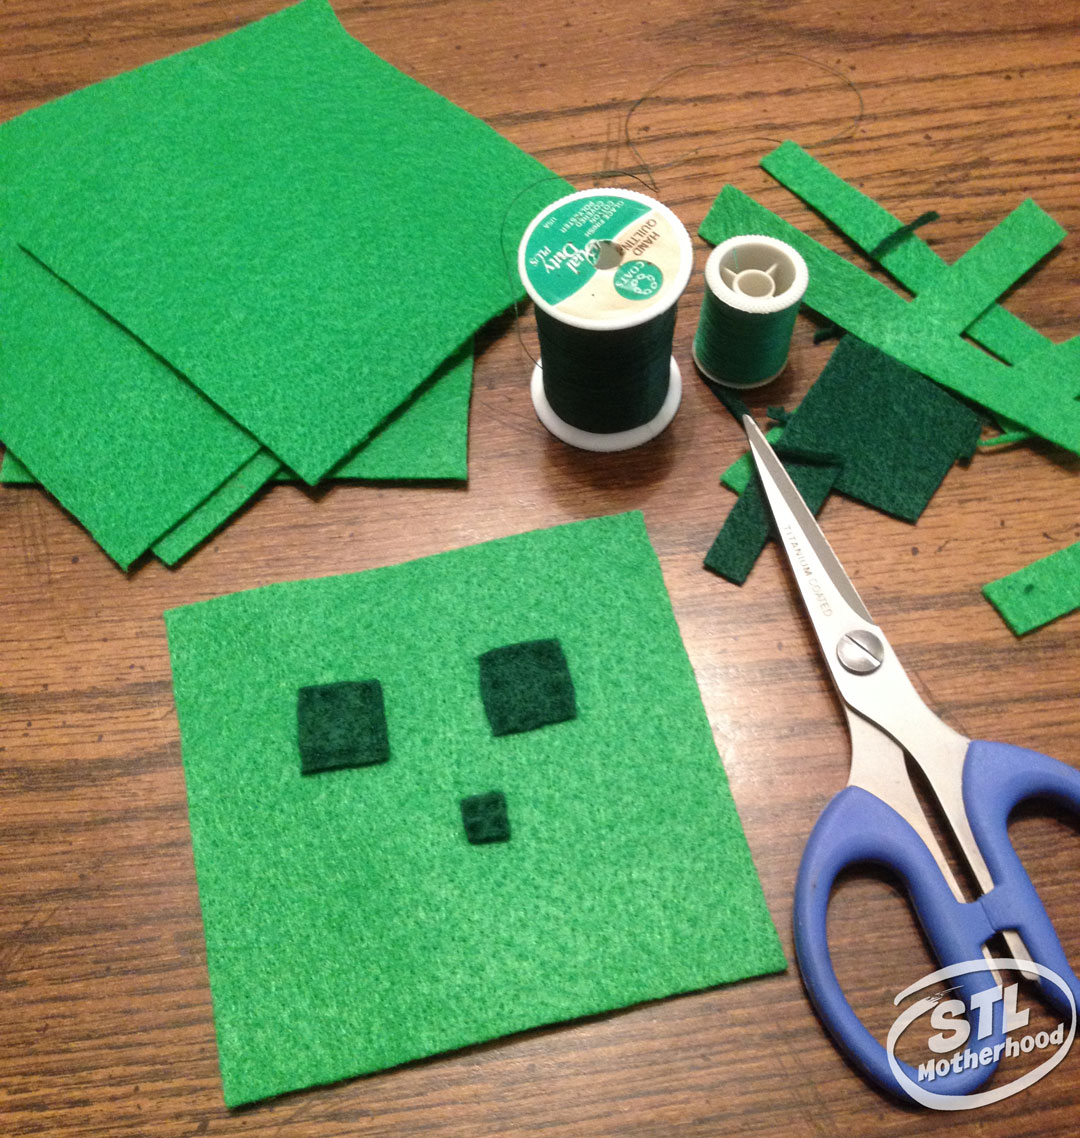 A Minecraft slime cube ready to sew